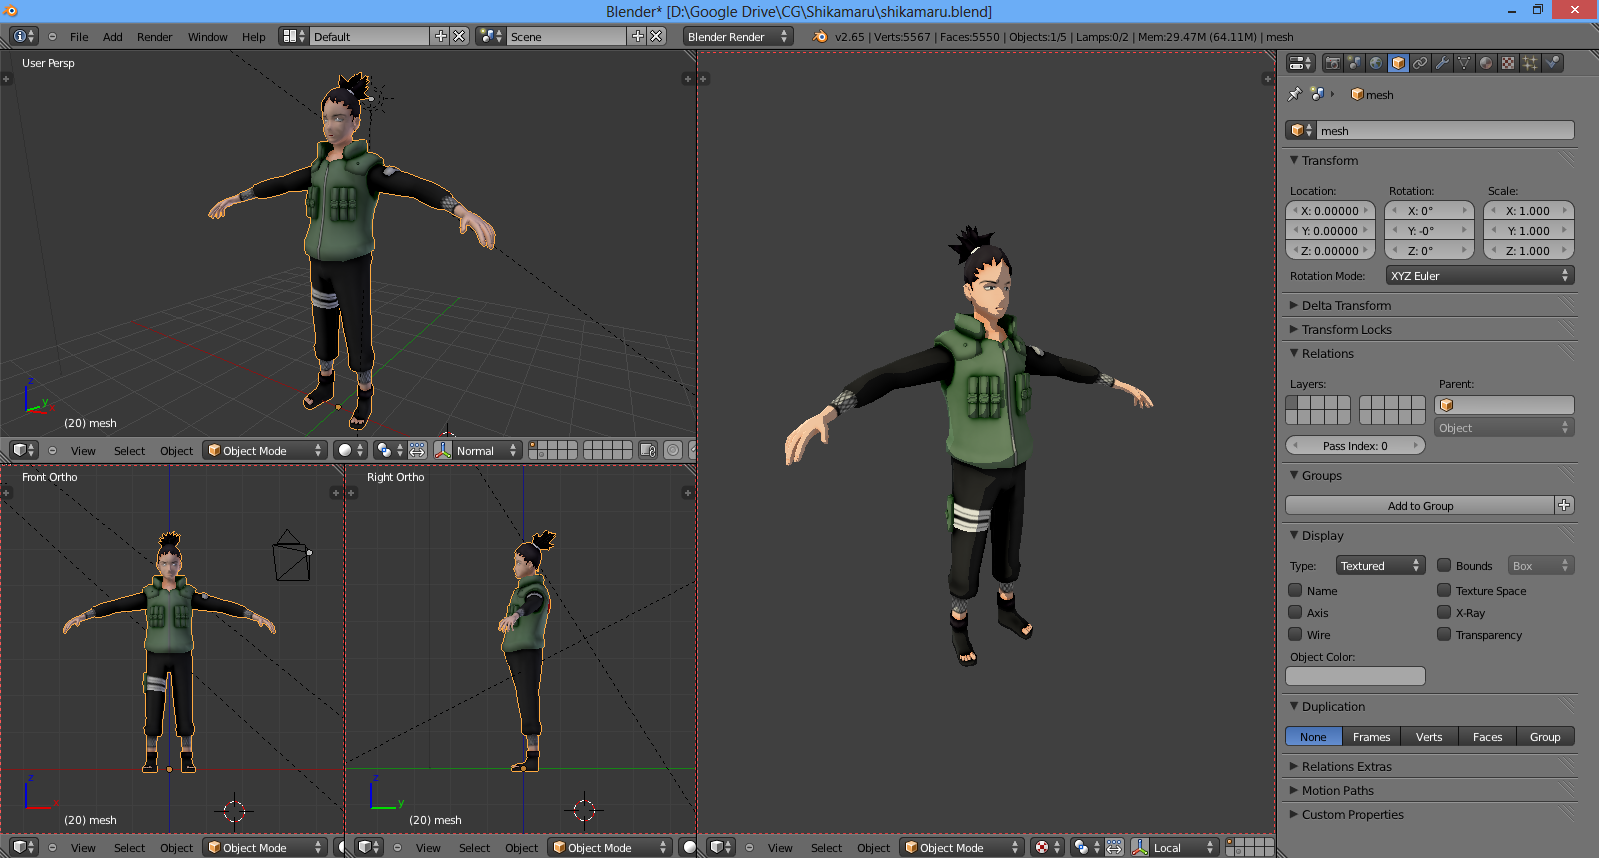 Blender Modeling A Cartoon Character : Shikamaru d model in blender by lasshi on deviantart